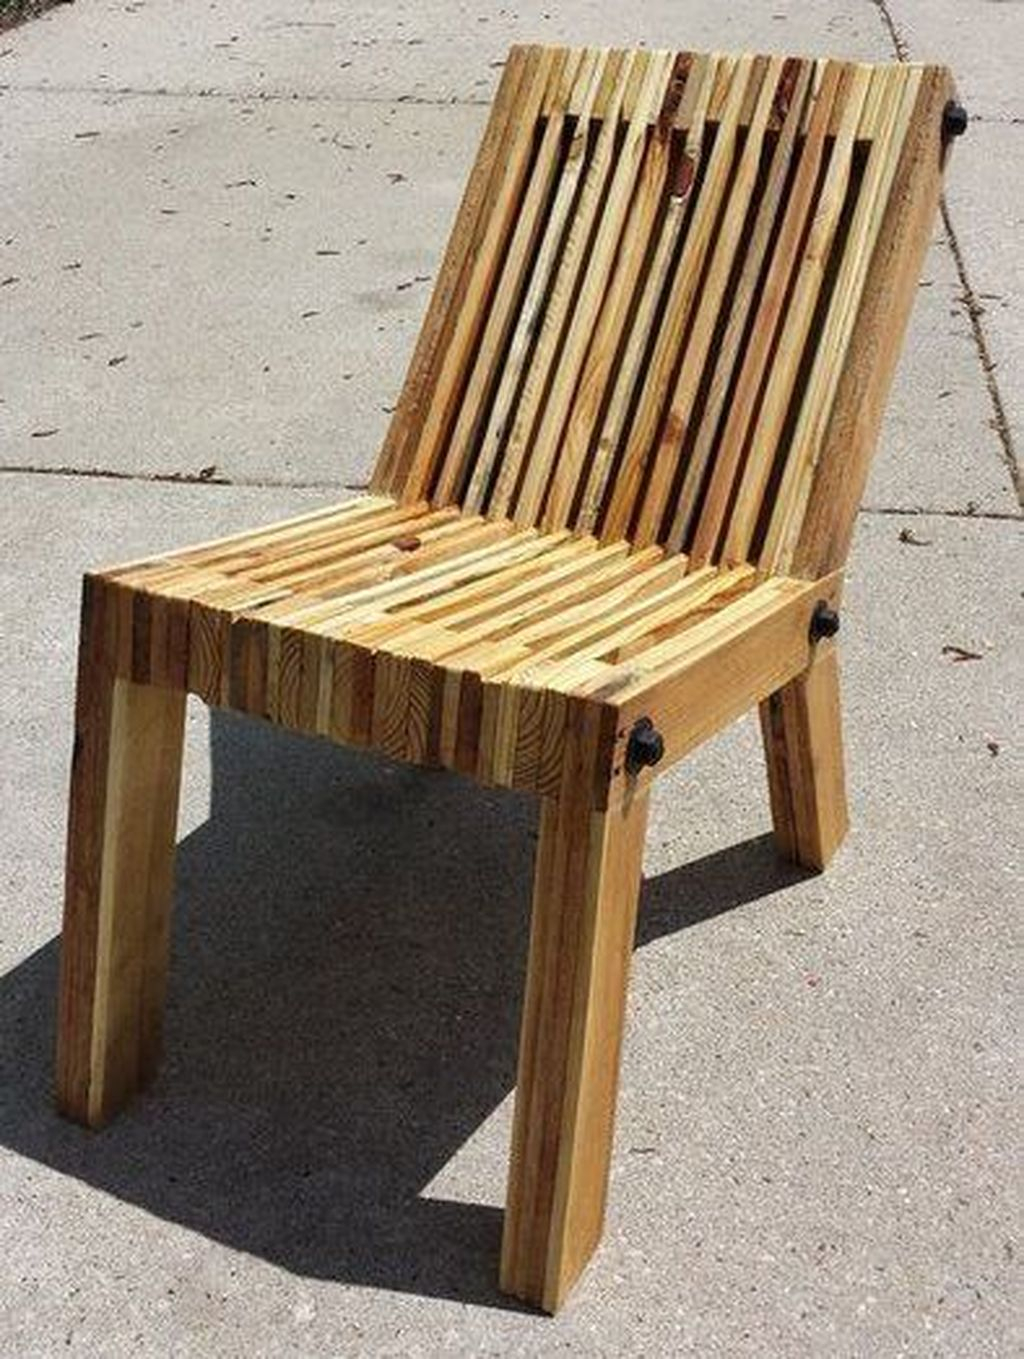 Popular Diy Chair Pallet Design Ideas That You Can Try 14